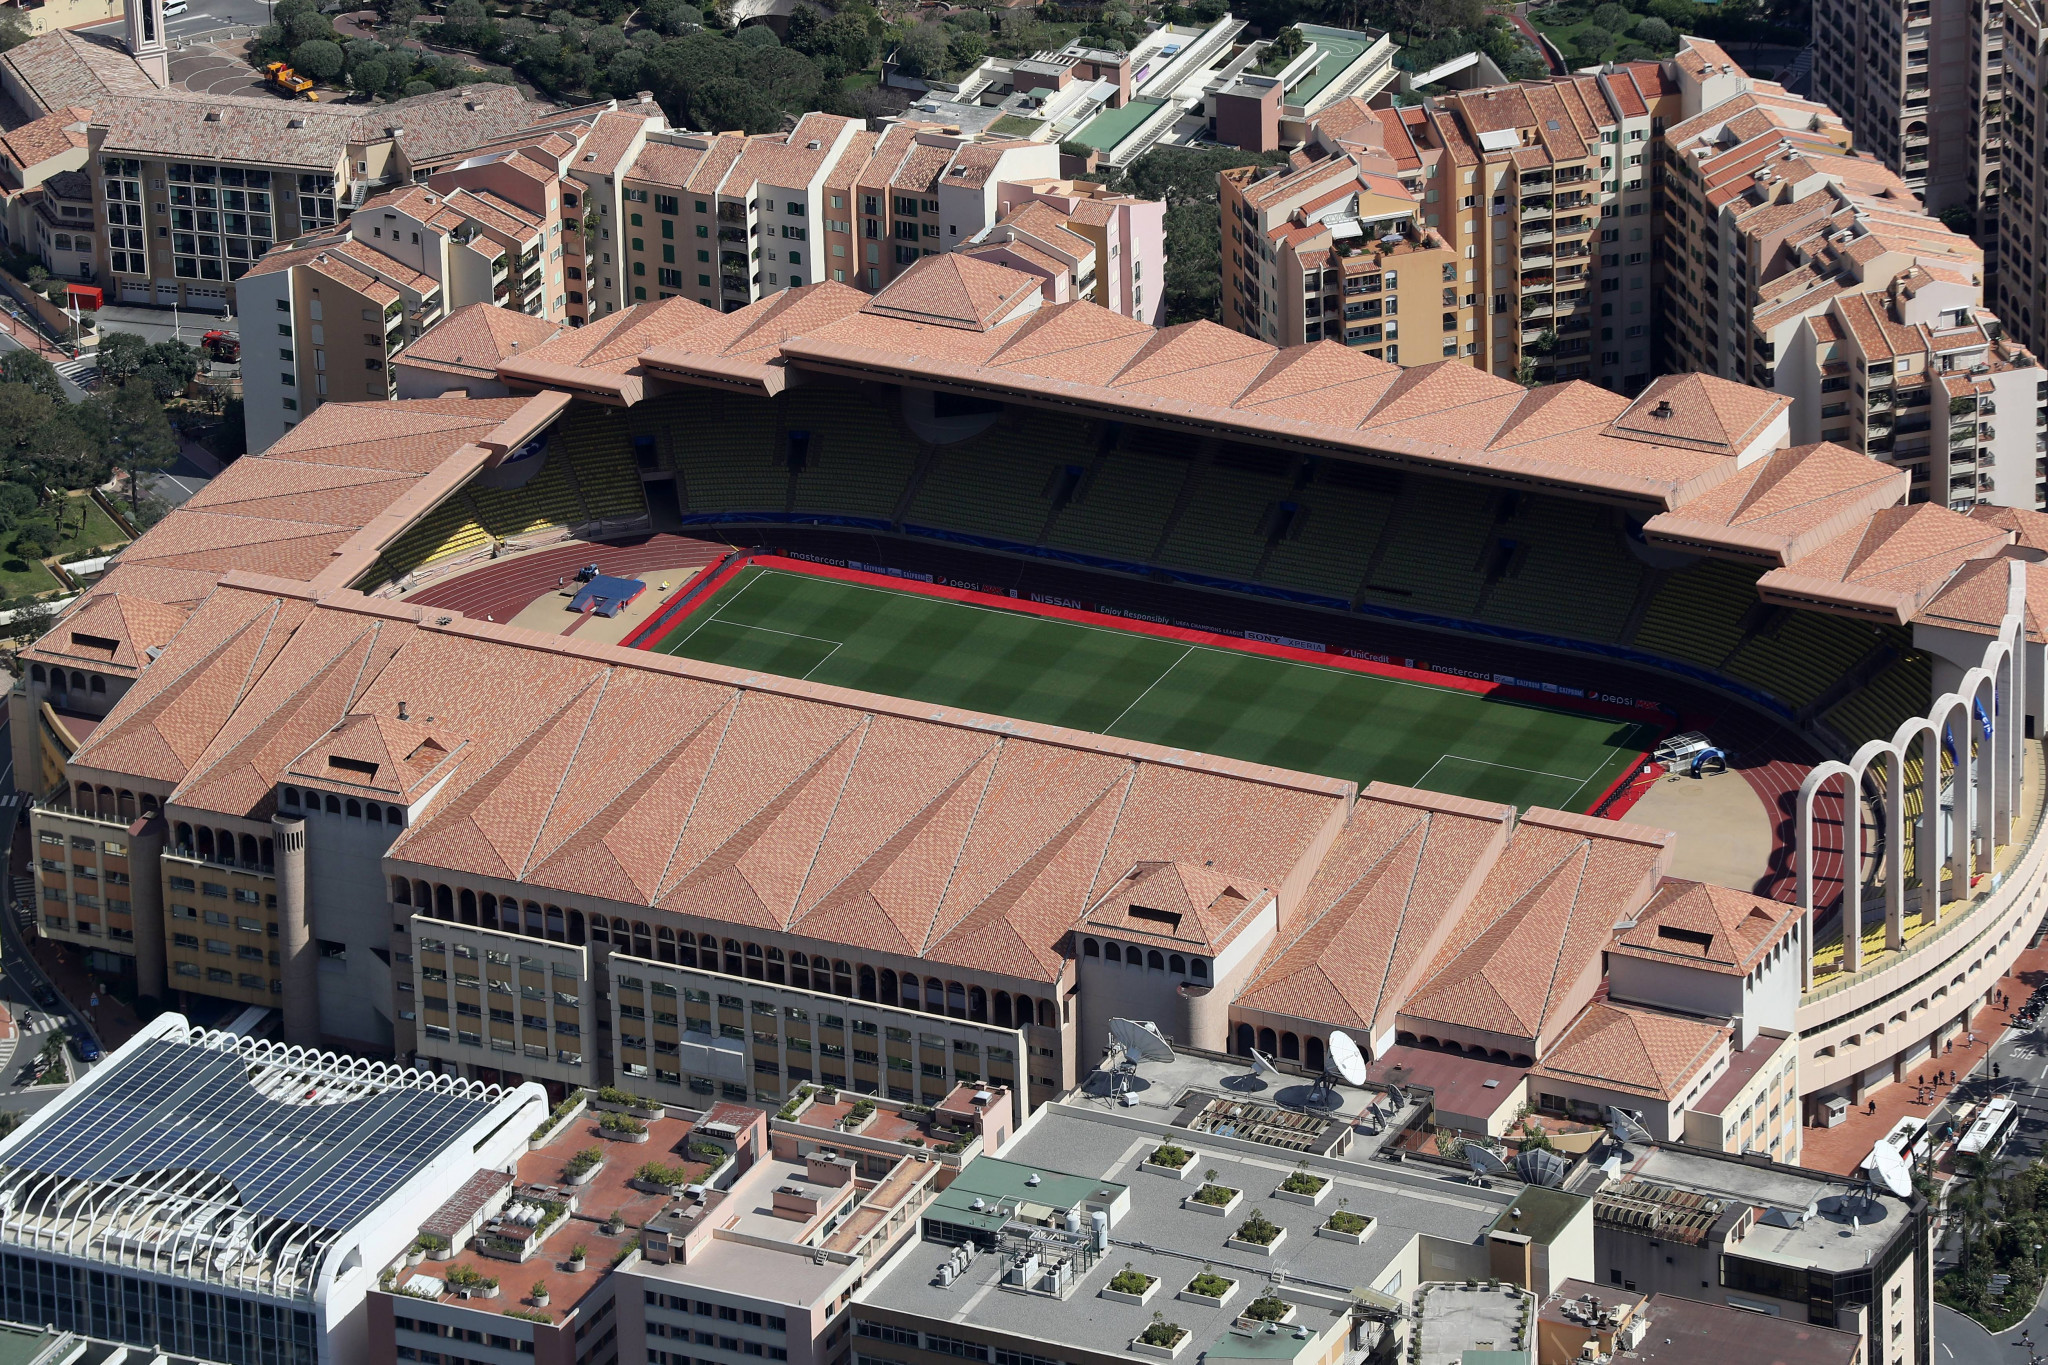 Fans invited to last-chance Tokyo 2020 rugby sevens qualifier in Monaco